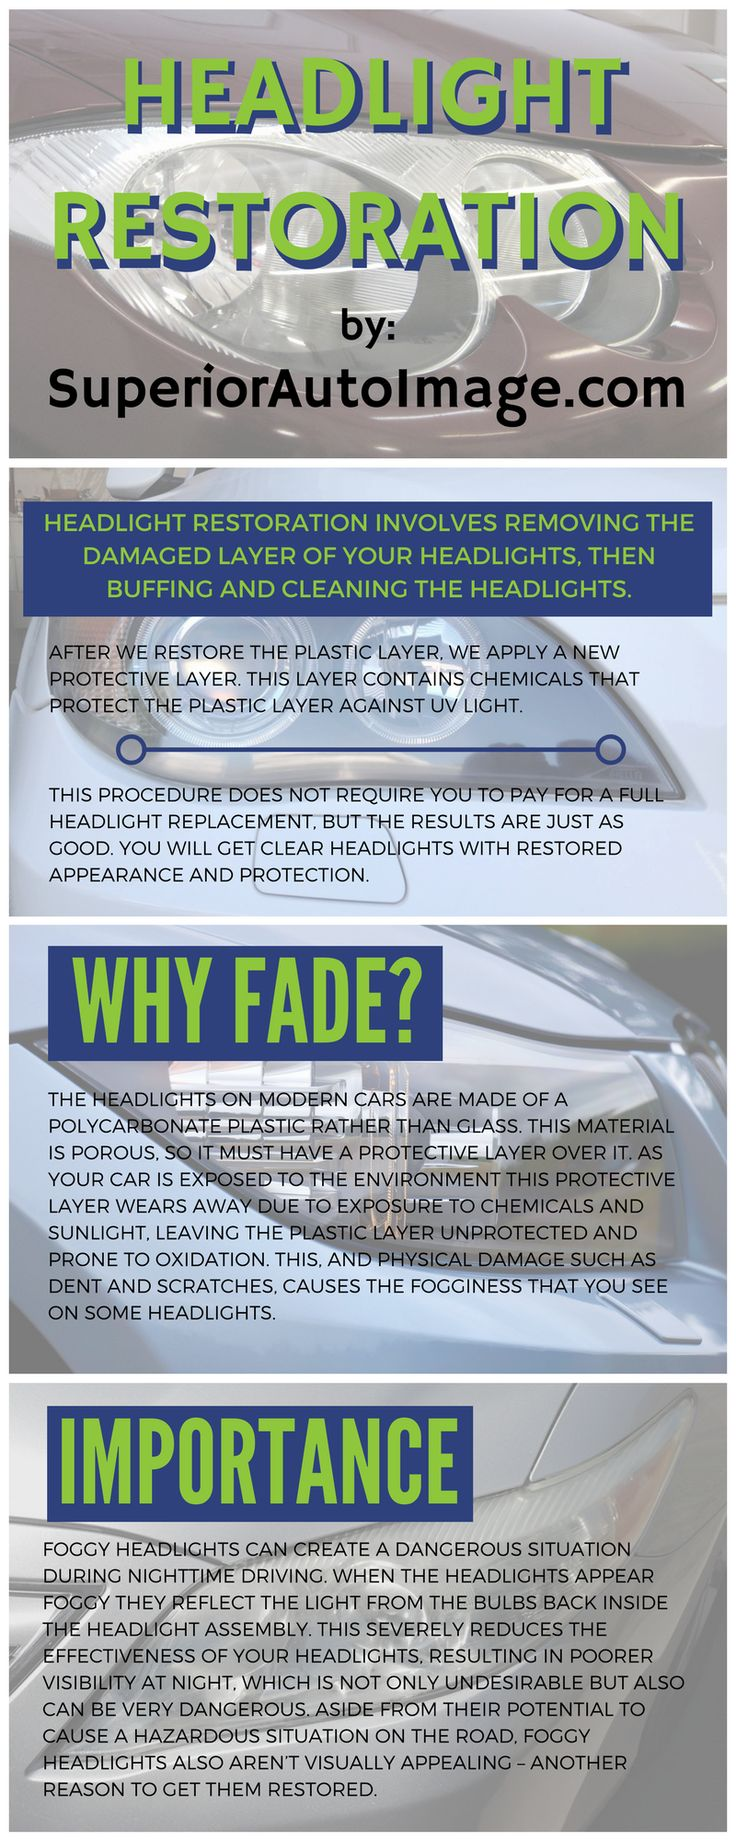 Headlight Restoration Service Infographic  It is common for your car's lights to fade over the years. This can diminish the effectiveness of your headlights, leading to lower visibility at night, and just doesn't look very good. Check out this infographic about headlight restoration and visit our page https://www.superiorautoimage.com/headlight-restoration-denver/ to learn more.